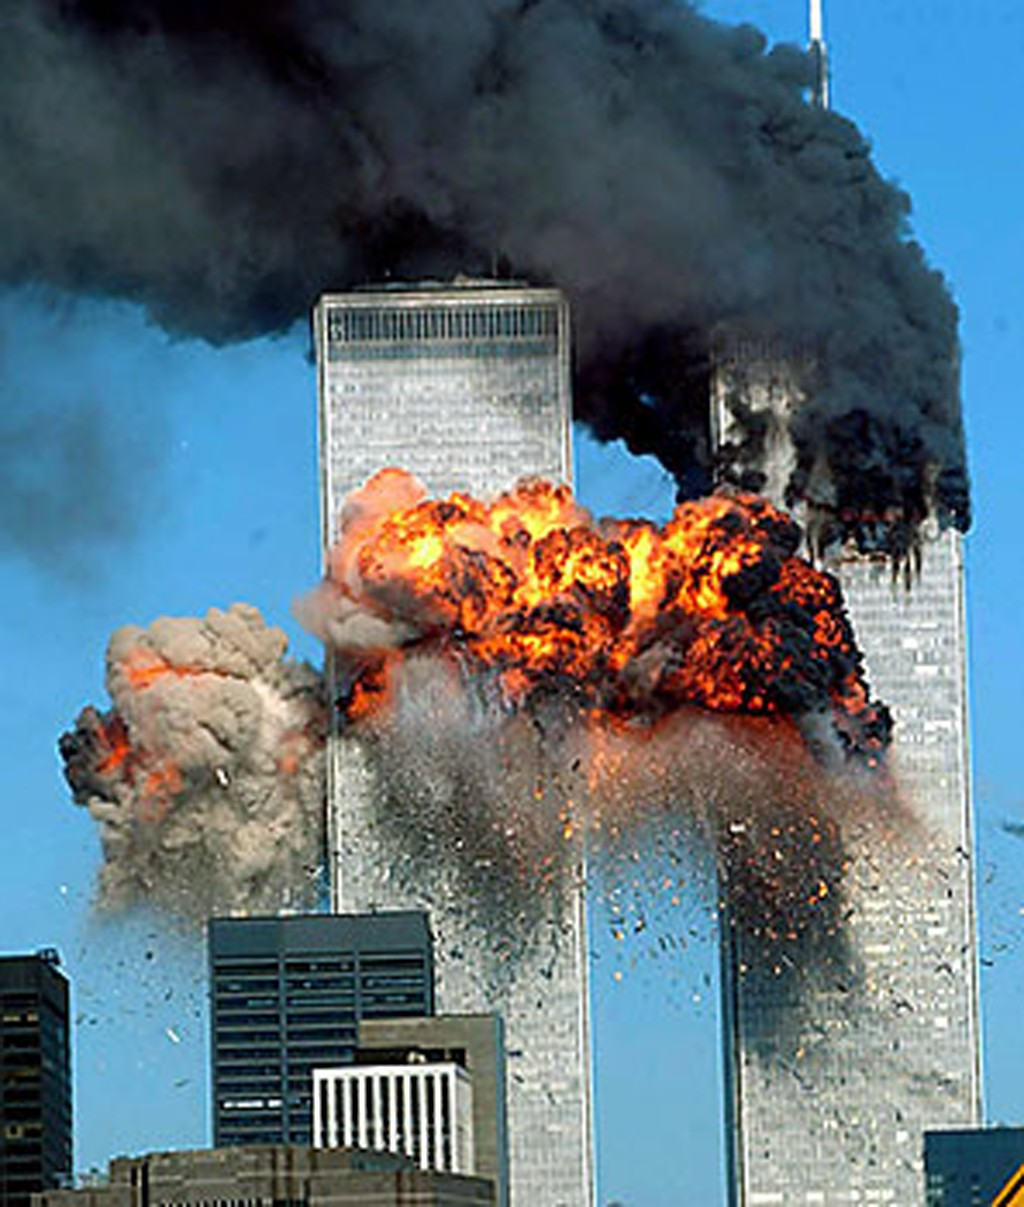 An image of the twin towers taken during the attack.